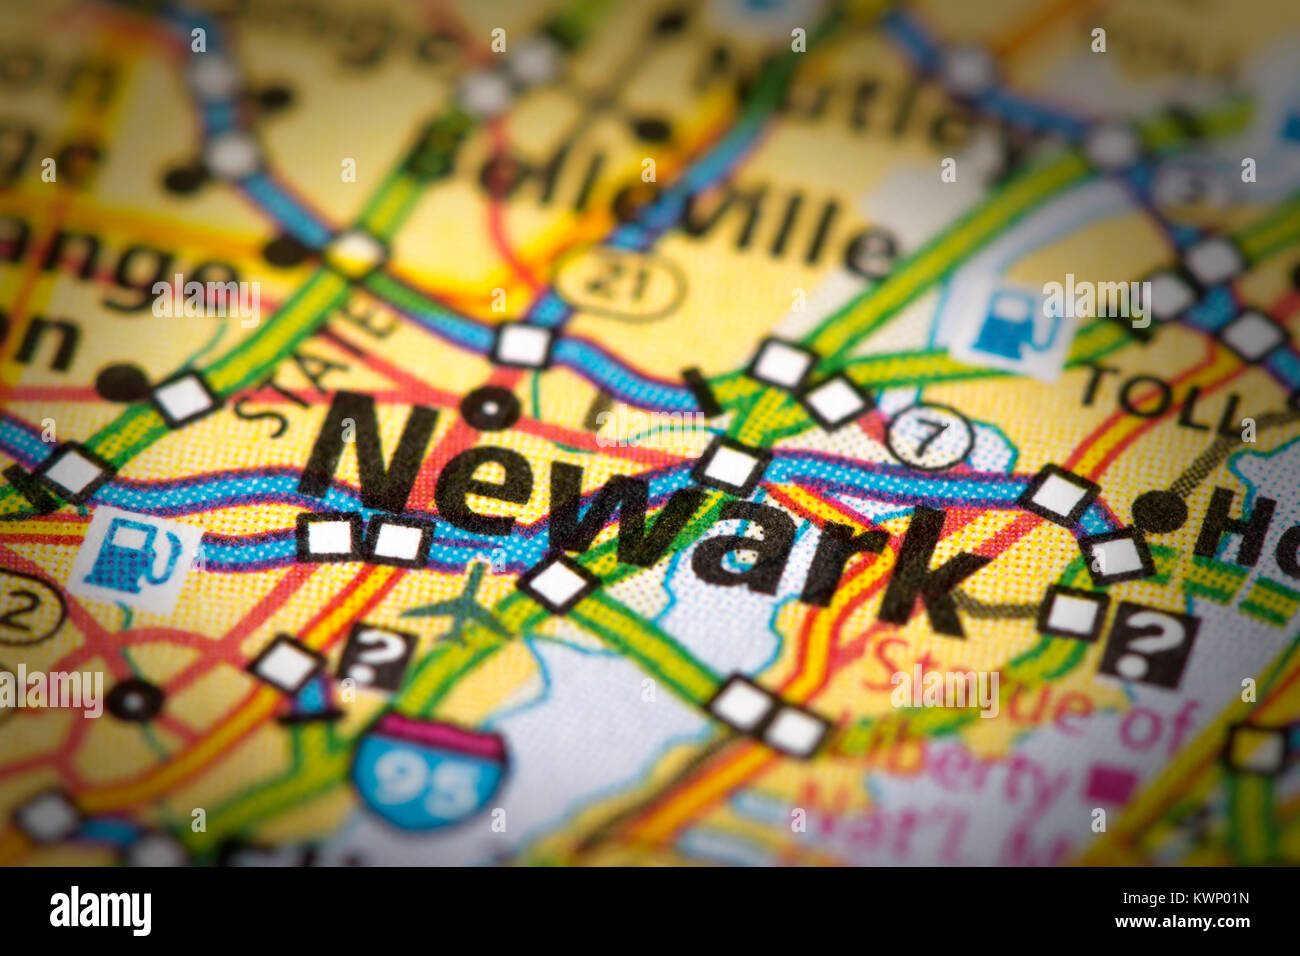 Closeup Of Newark New Jersey On A Road Map Of The United States